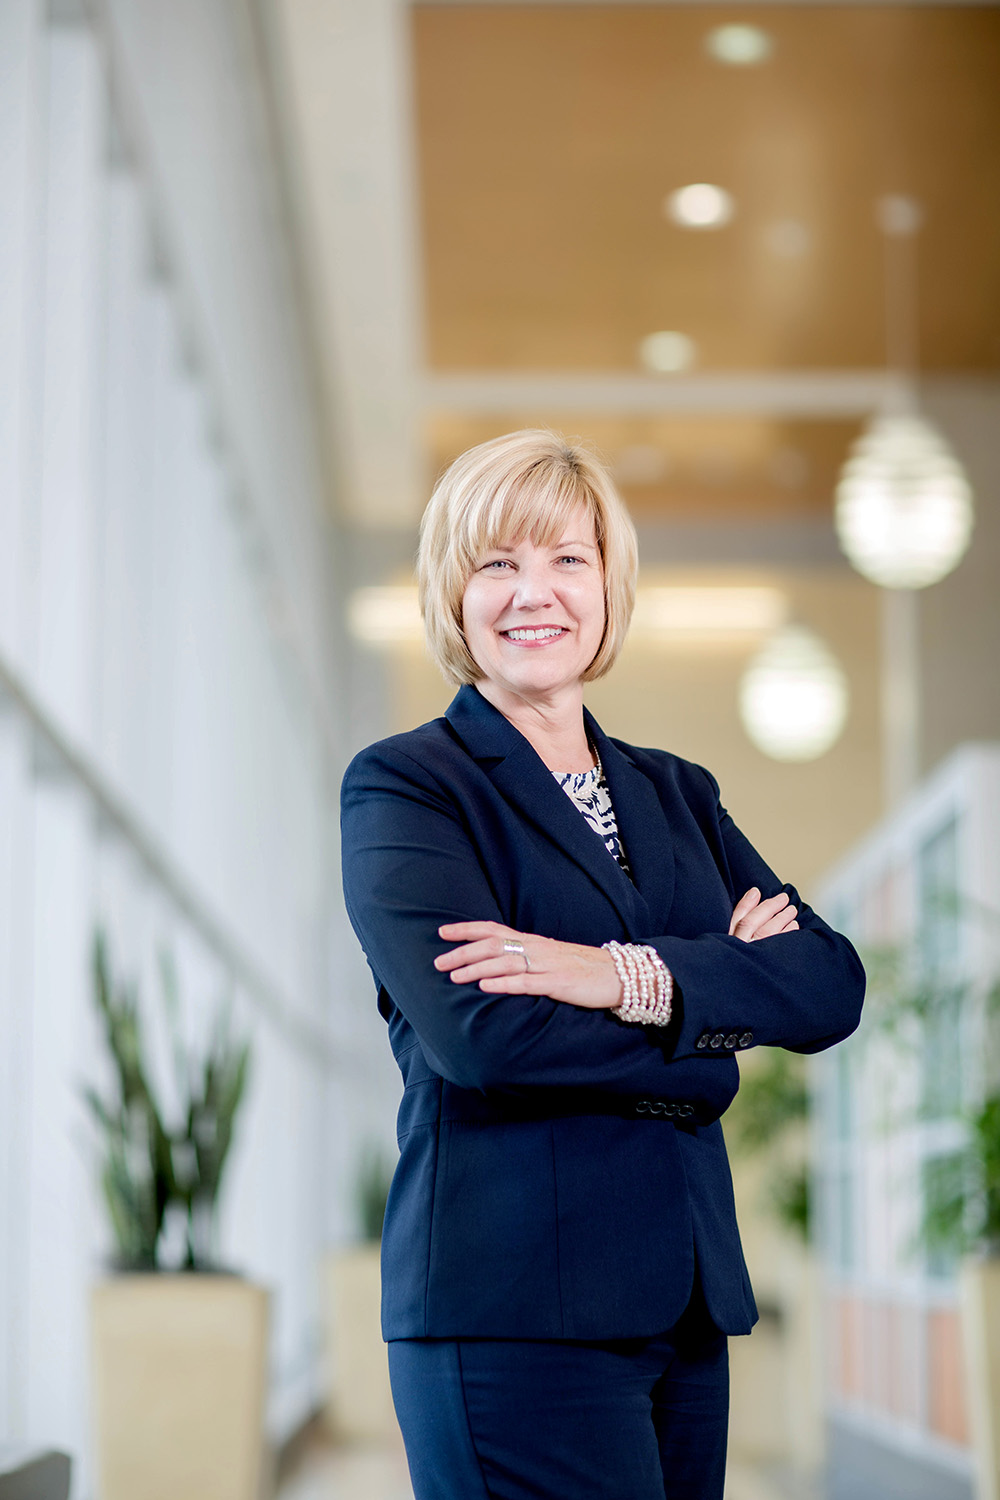 Roxane Townsend is the CEO of UAMS Medical Center